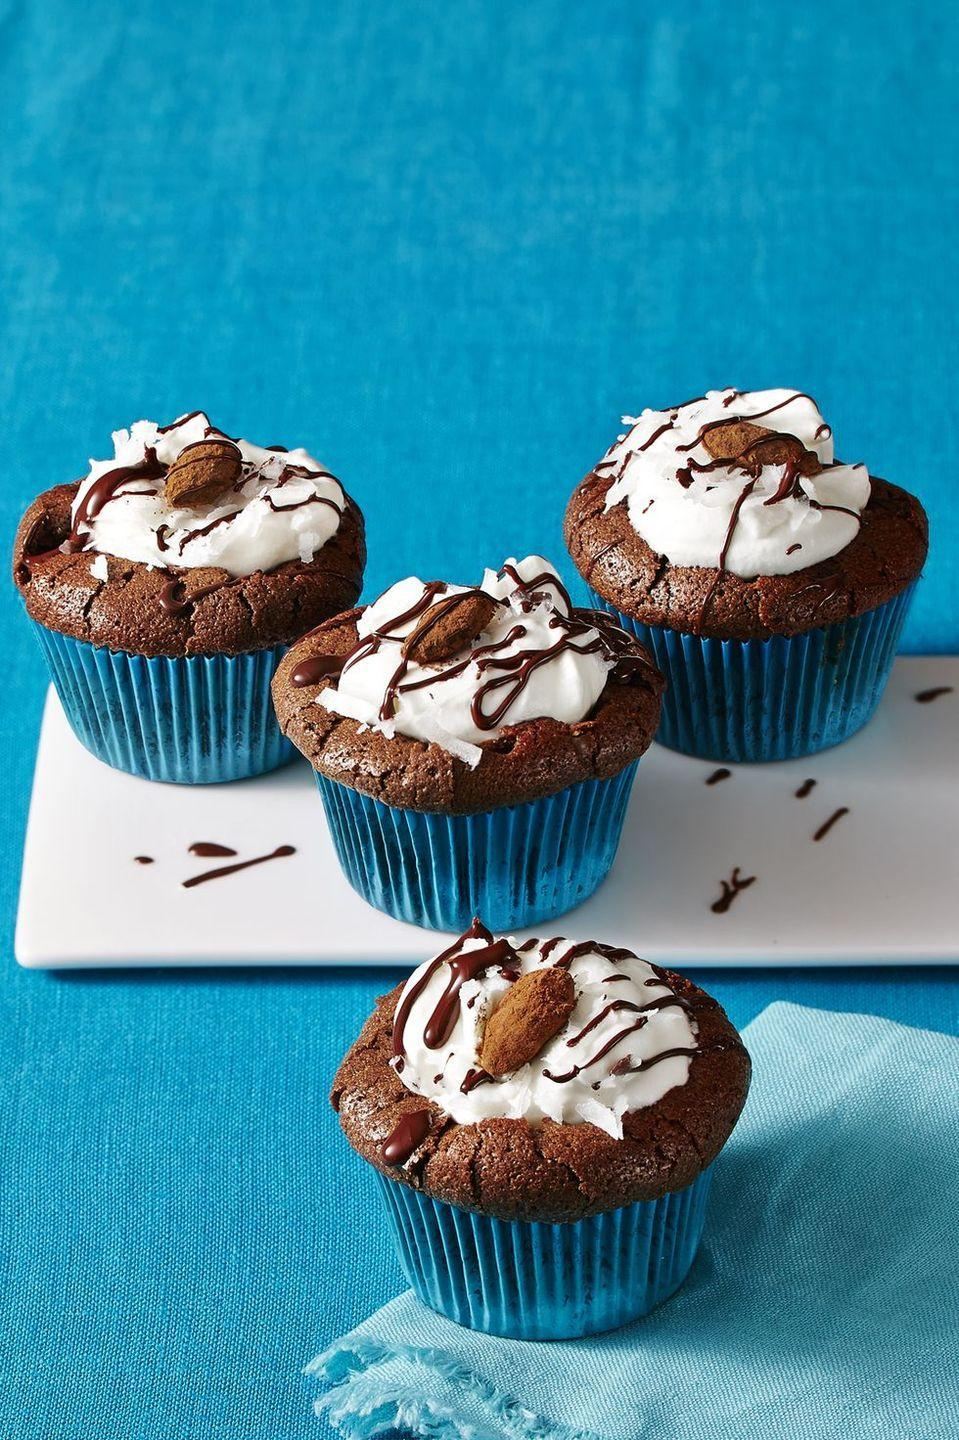 """<p>Turn your favorite coconut candy bar into these tasty gluten-free cupcake treats. </p><p><a href=""""https://www.womansday.com/food-recipes/food-drinks/recipes/a58122/almond-joy-cupcakes-recipes/"""" rel=""""nofollow noopener"""" target=""""_blank"""" data-ylk=""""slk:Get the recipe from Woman's Day »"""" class=""""link rapid-noclick-resp""""><em>Get the recipe from Woman's Day »</em></a></p>"""